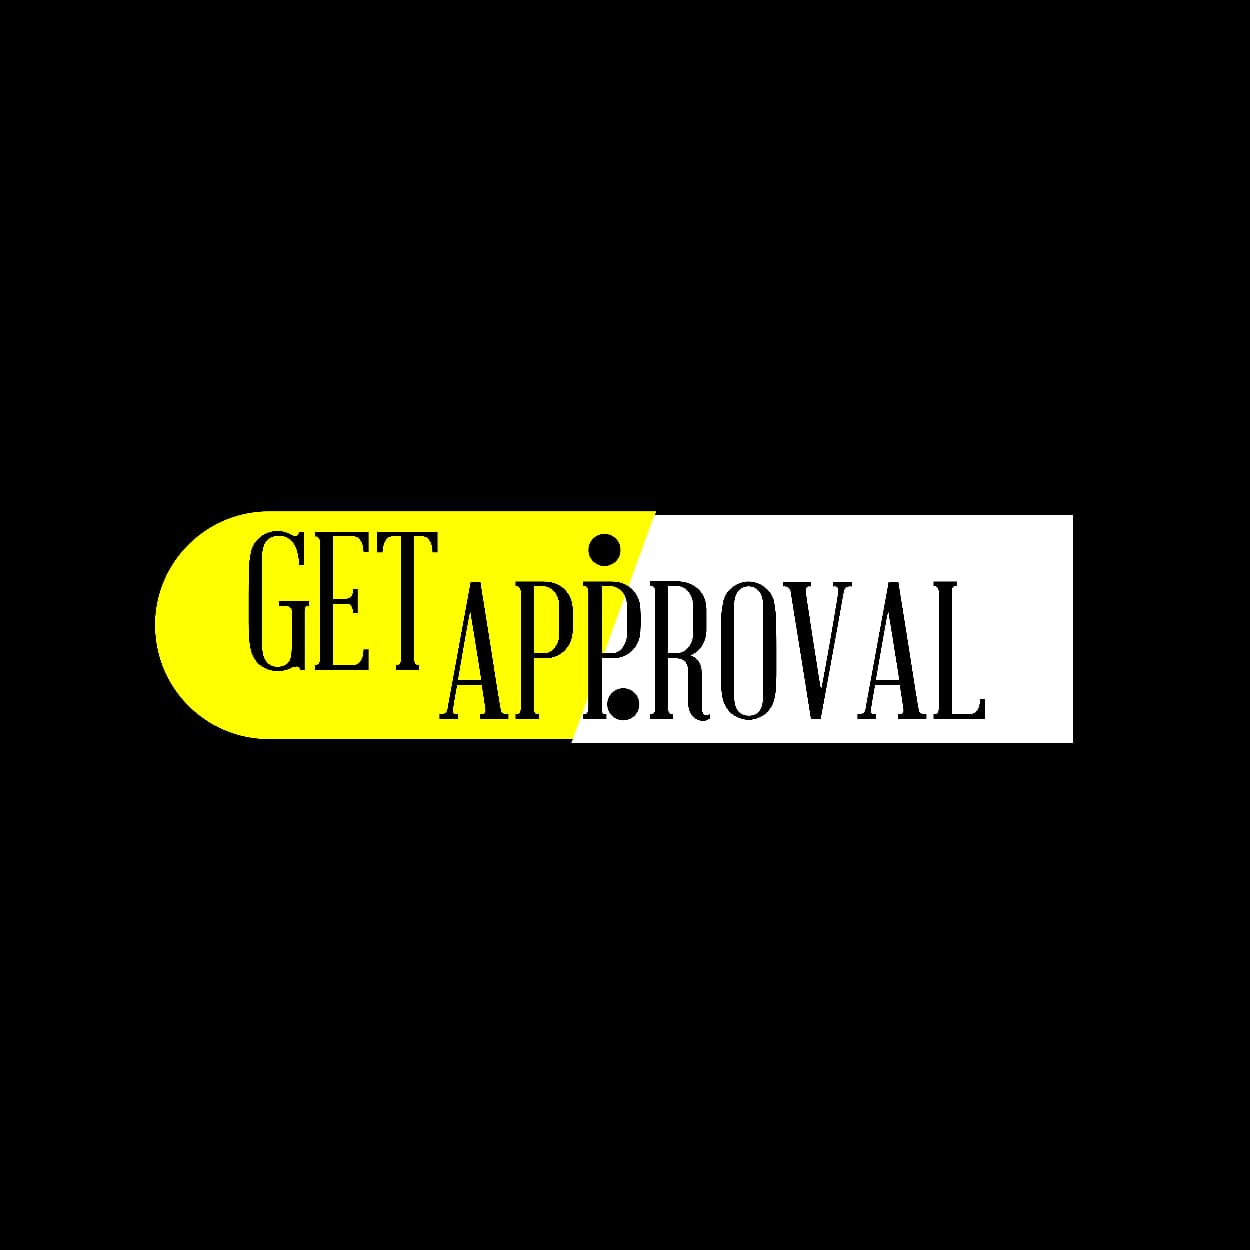 Get Approval